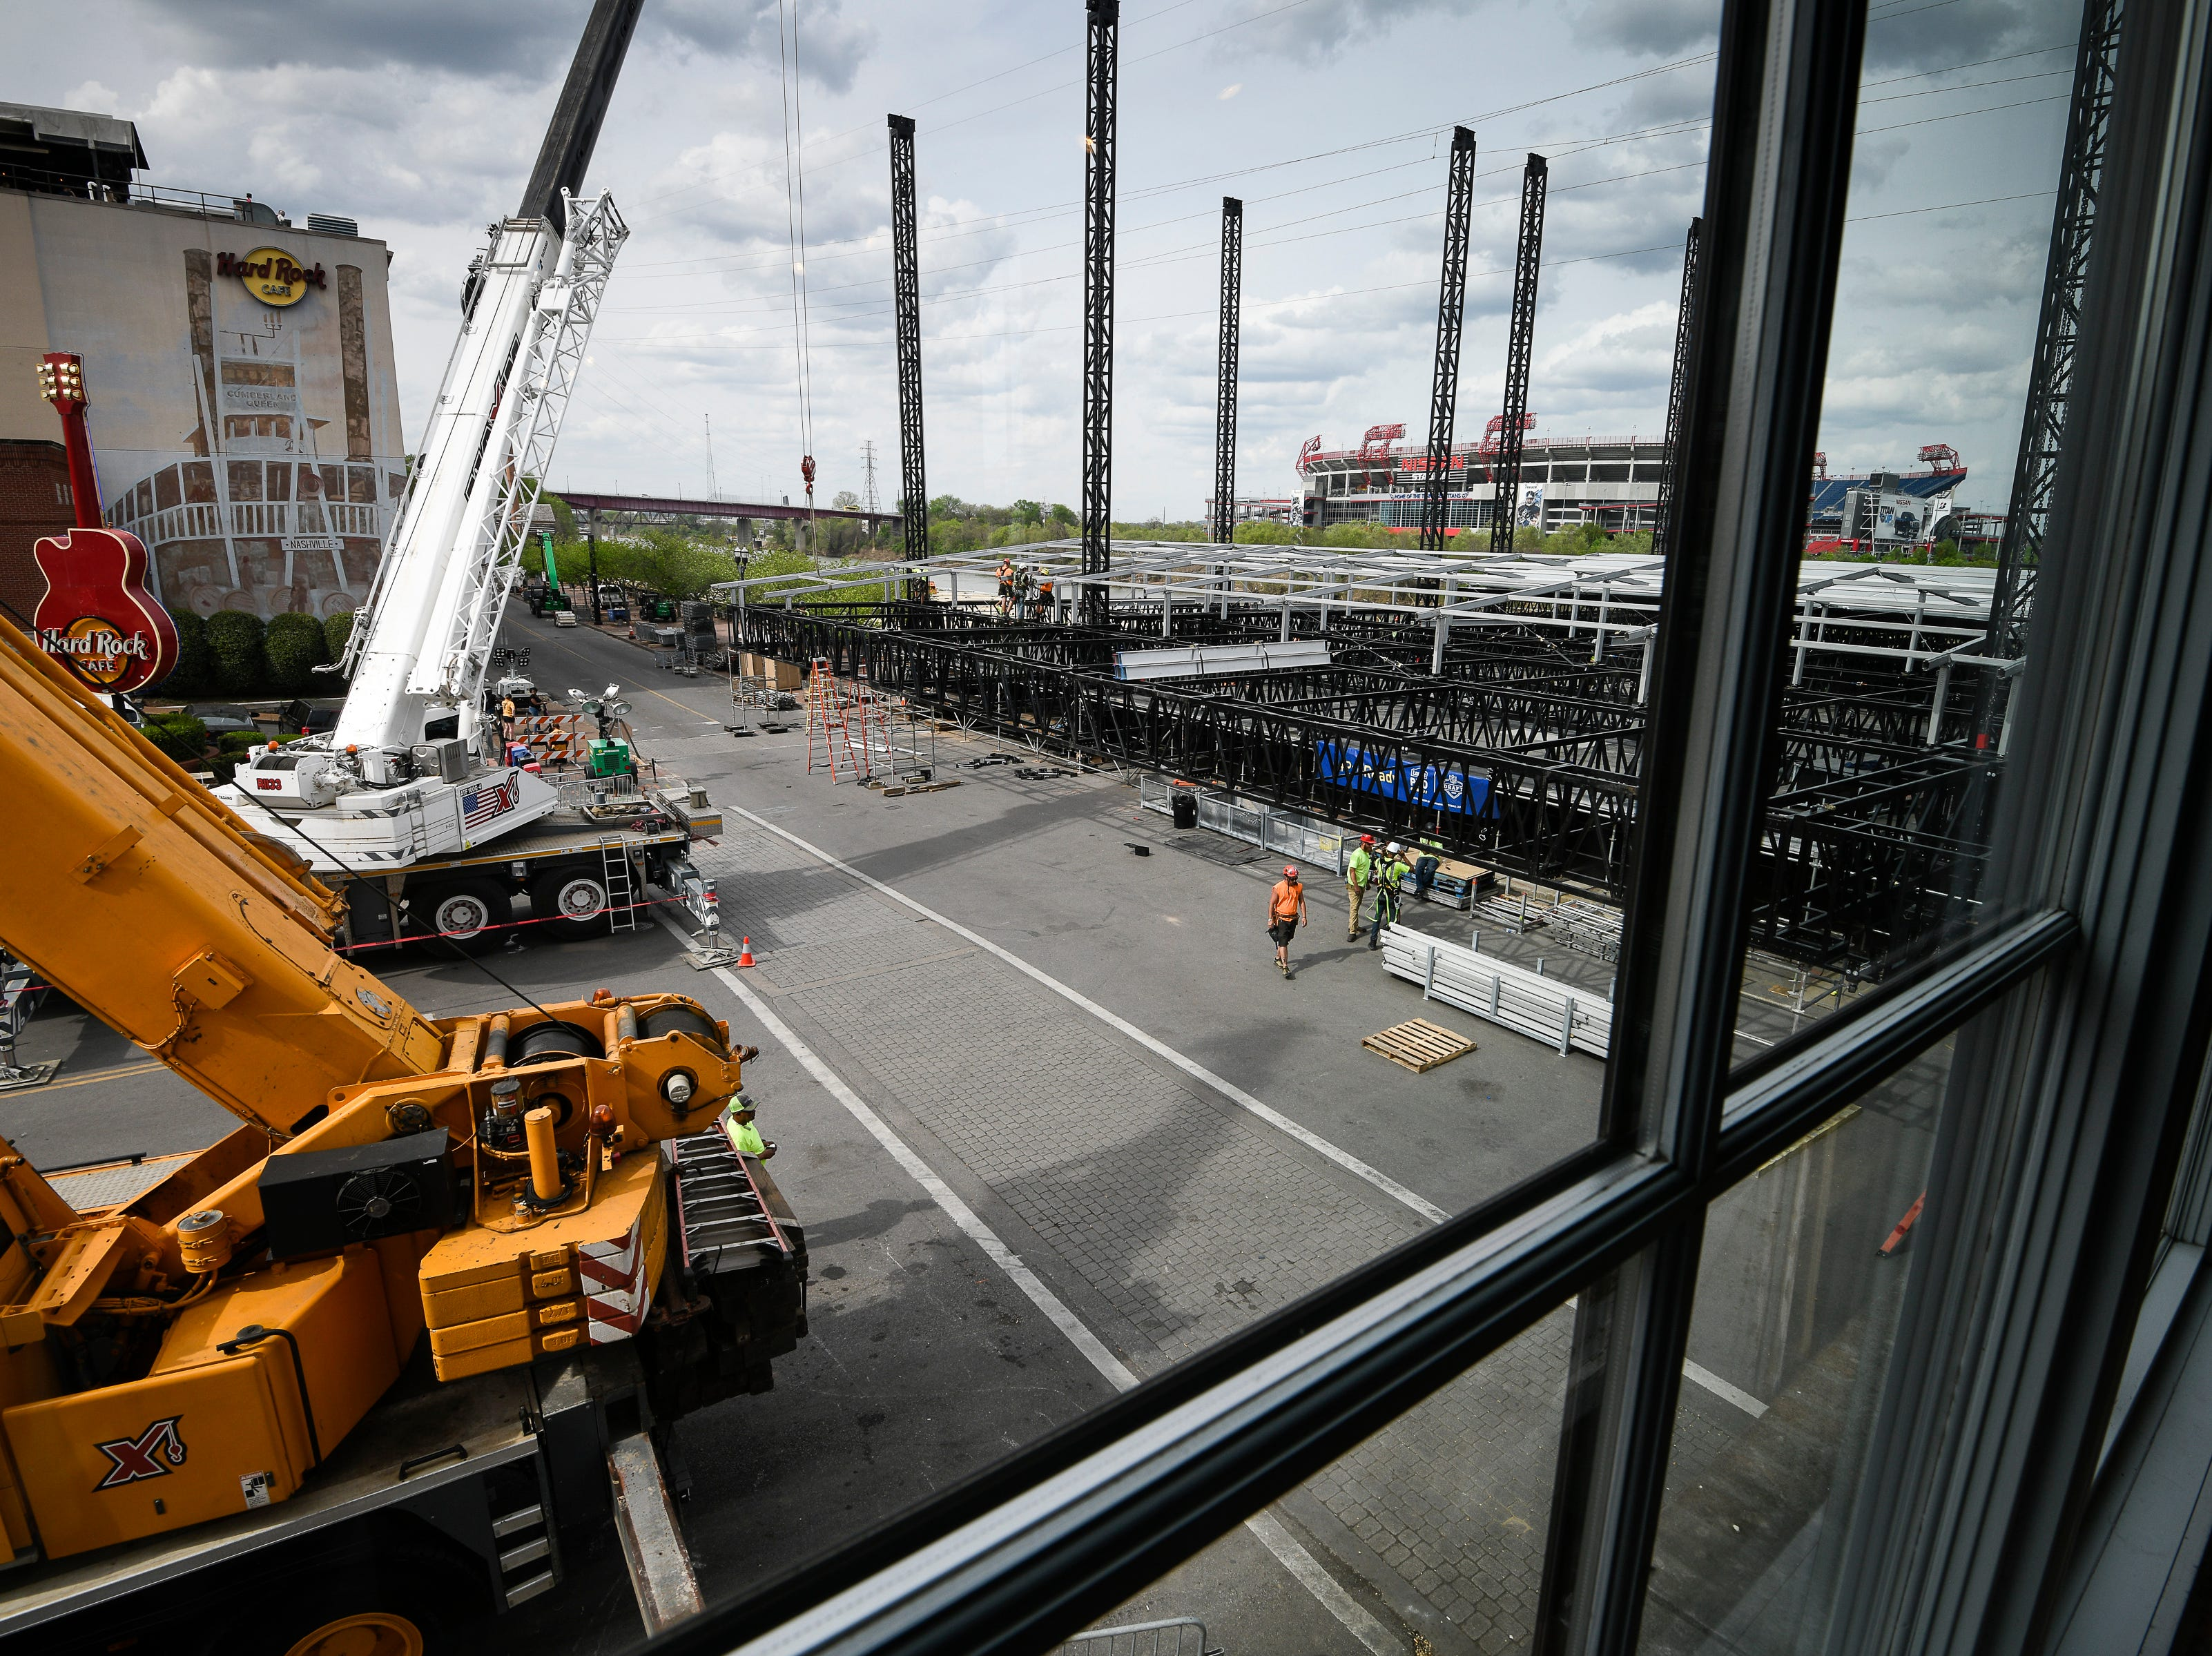 Construction continues on the NFL Draft stage at the intersection of Broadway and 1st Ave. Thursday, April 11, 2019 in Nashville, Tenn.